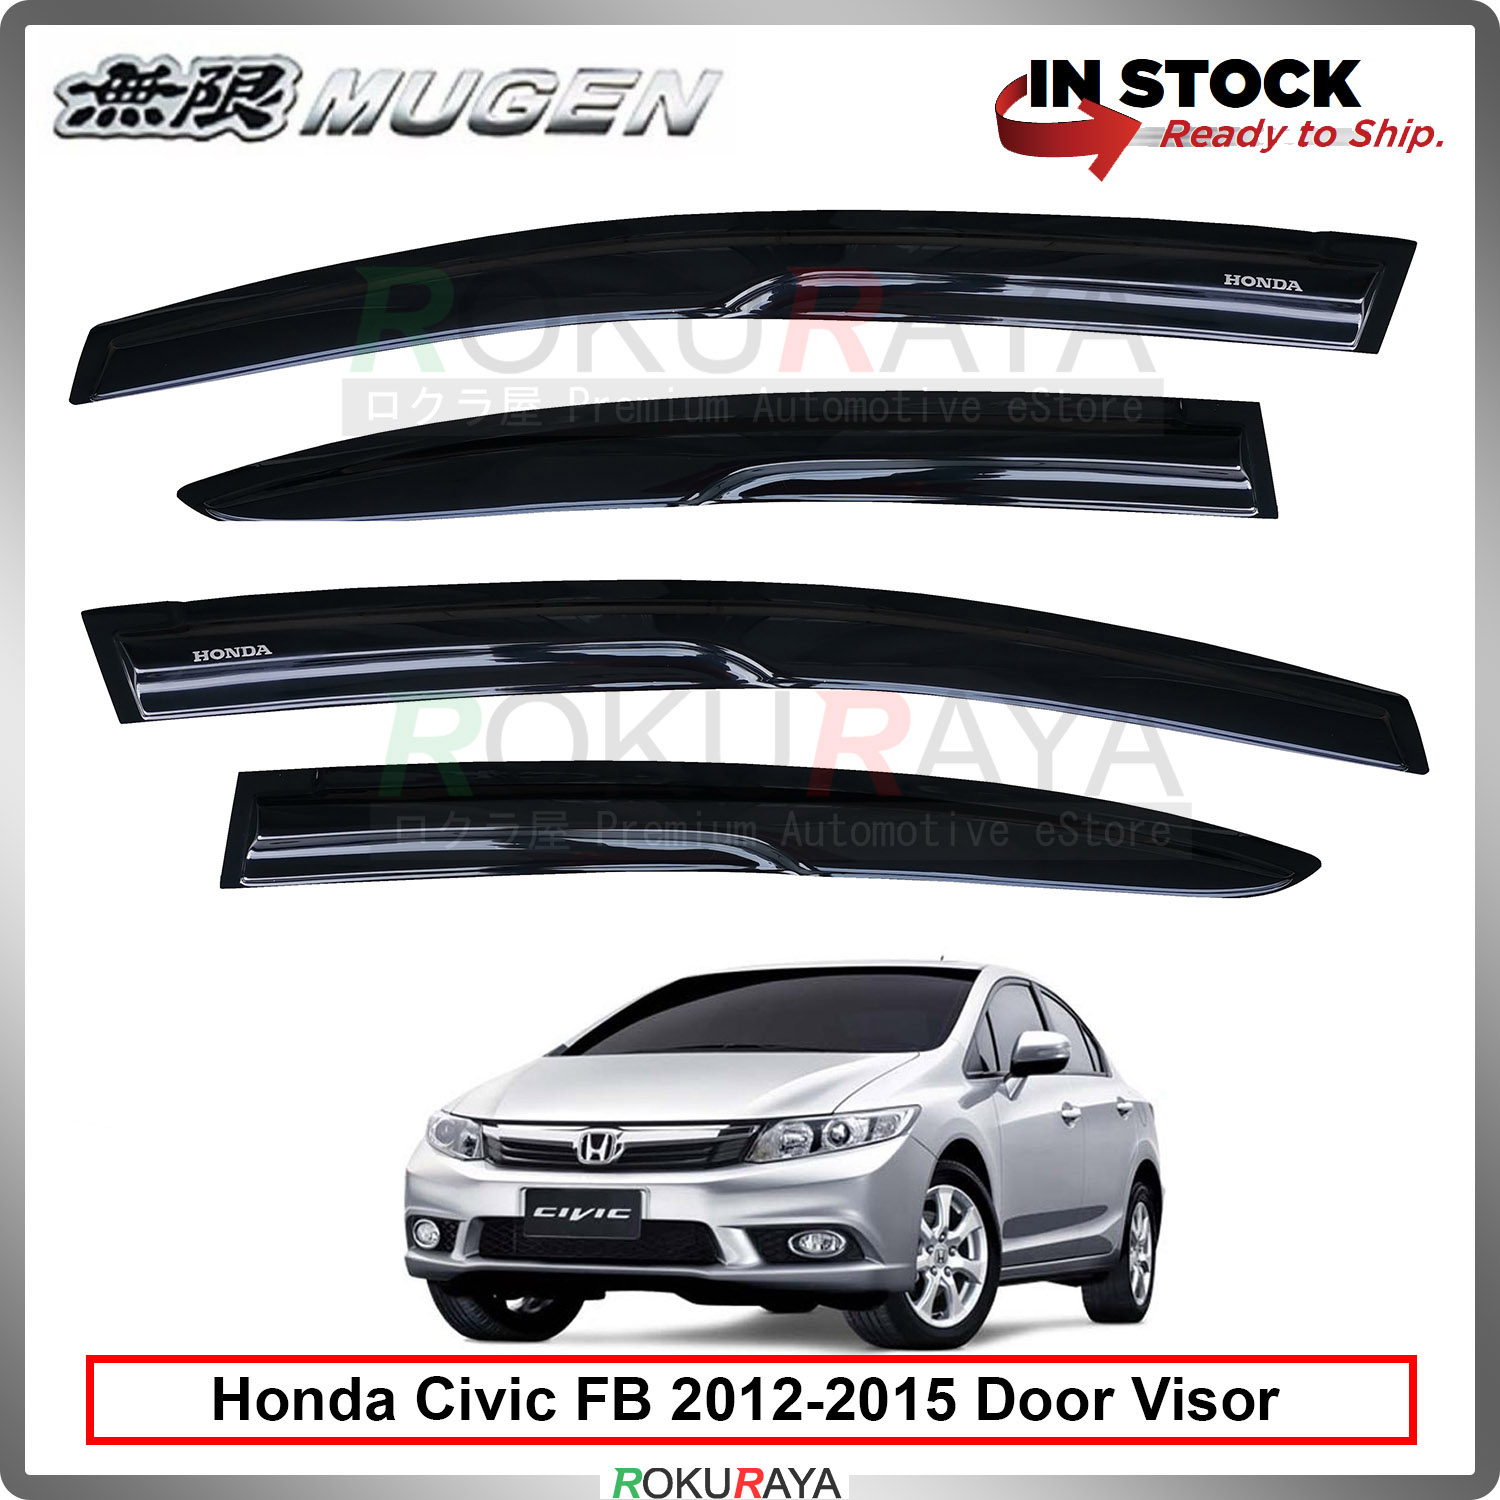 Honda Civic FB (9th Gen) 2011-2015 Mugen Curve Door Visor Air Press Wi